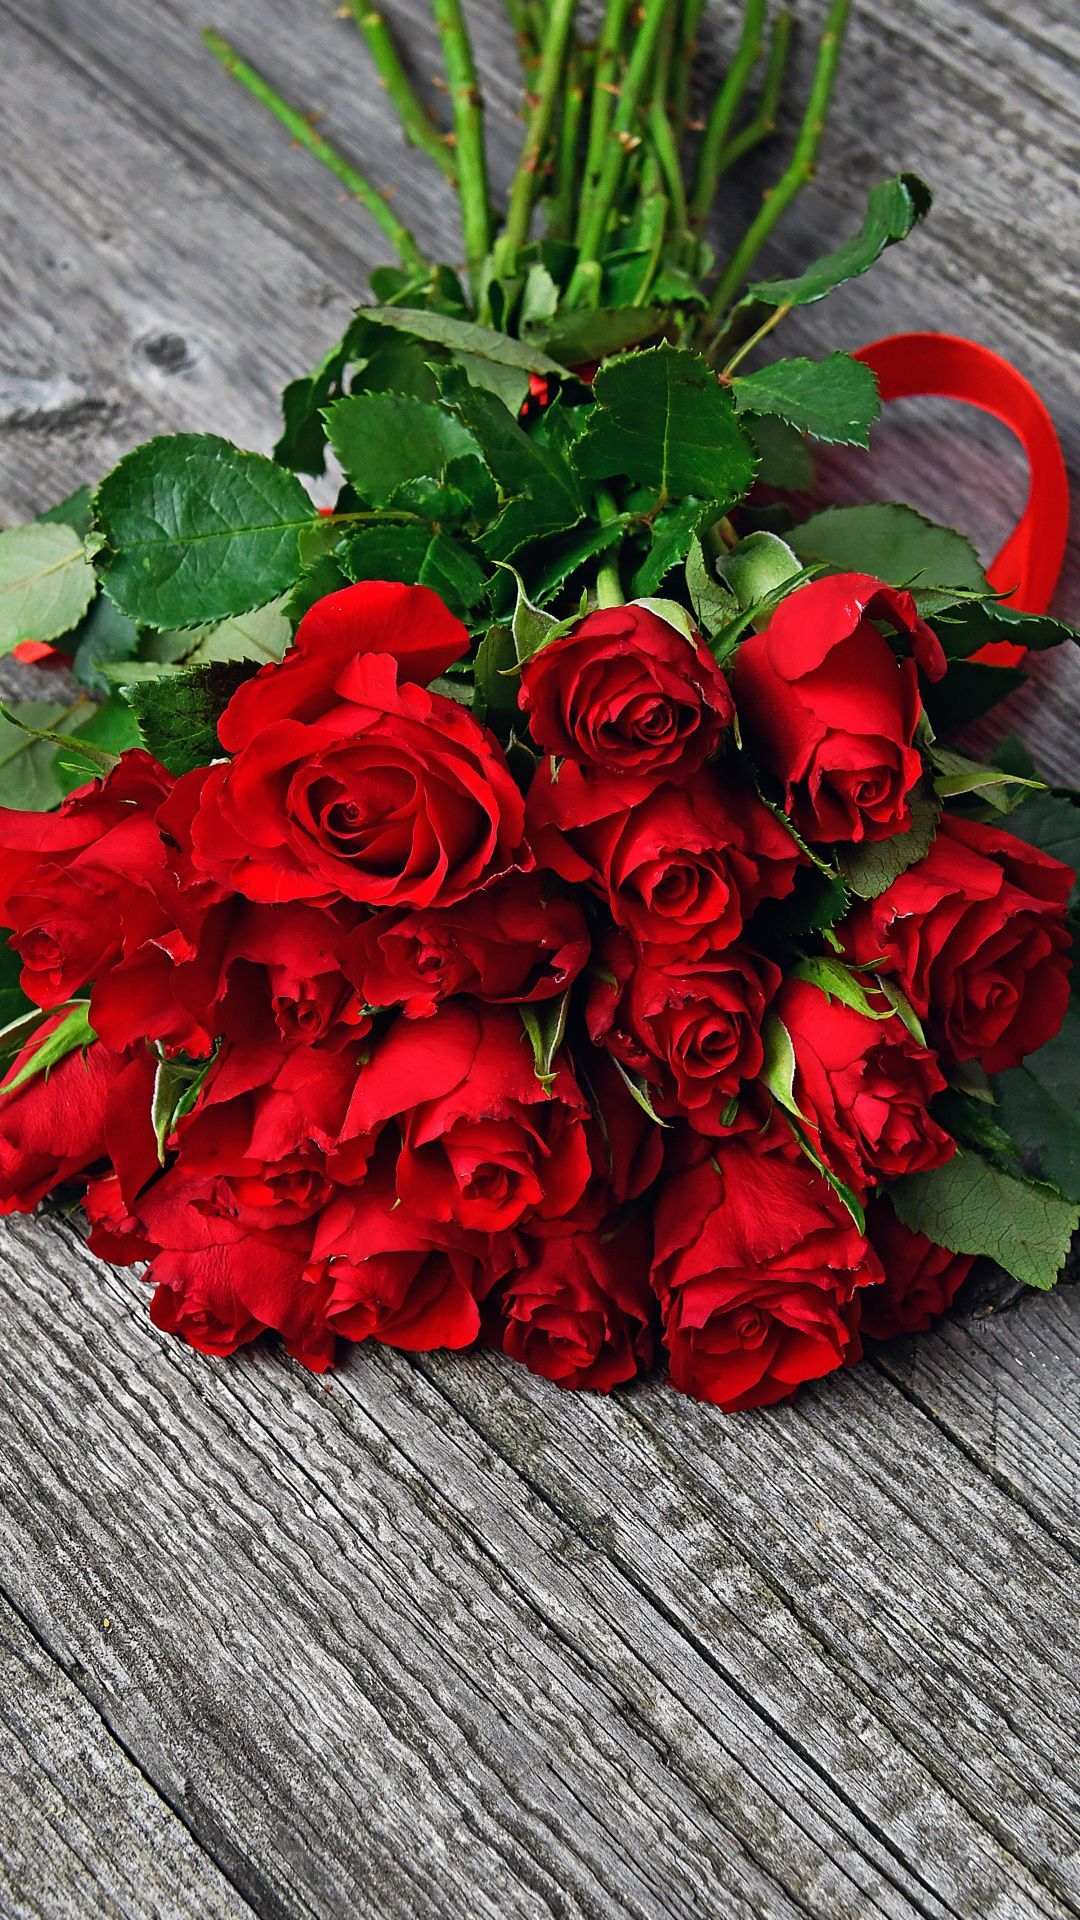 Visit Love Flowers Wallpaper Android On High Definition Wallpaper At Rainbowwallpaper Info Pin If In 2020 Red Flower Bouquet Rose Flower Wallpaper Red Roses Wallpaper